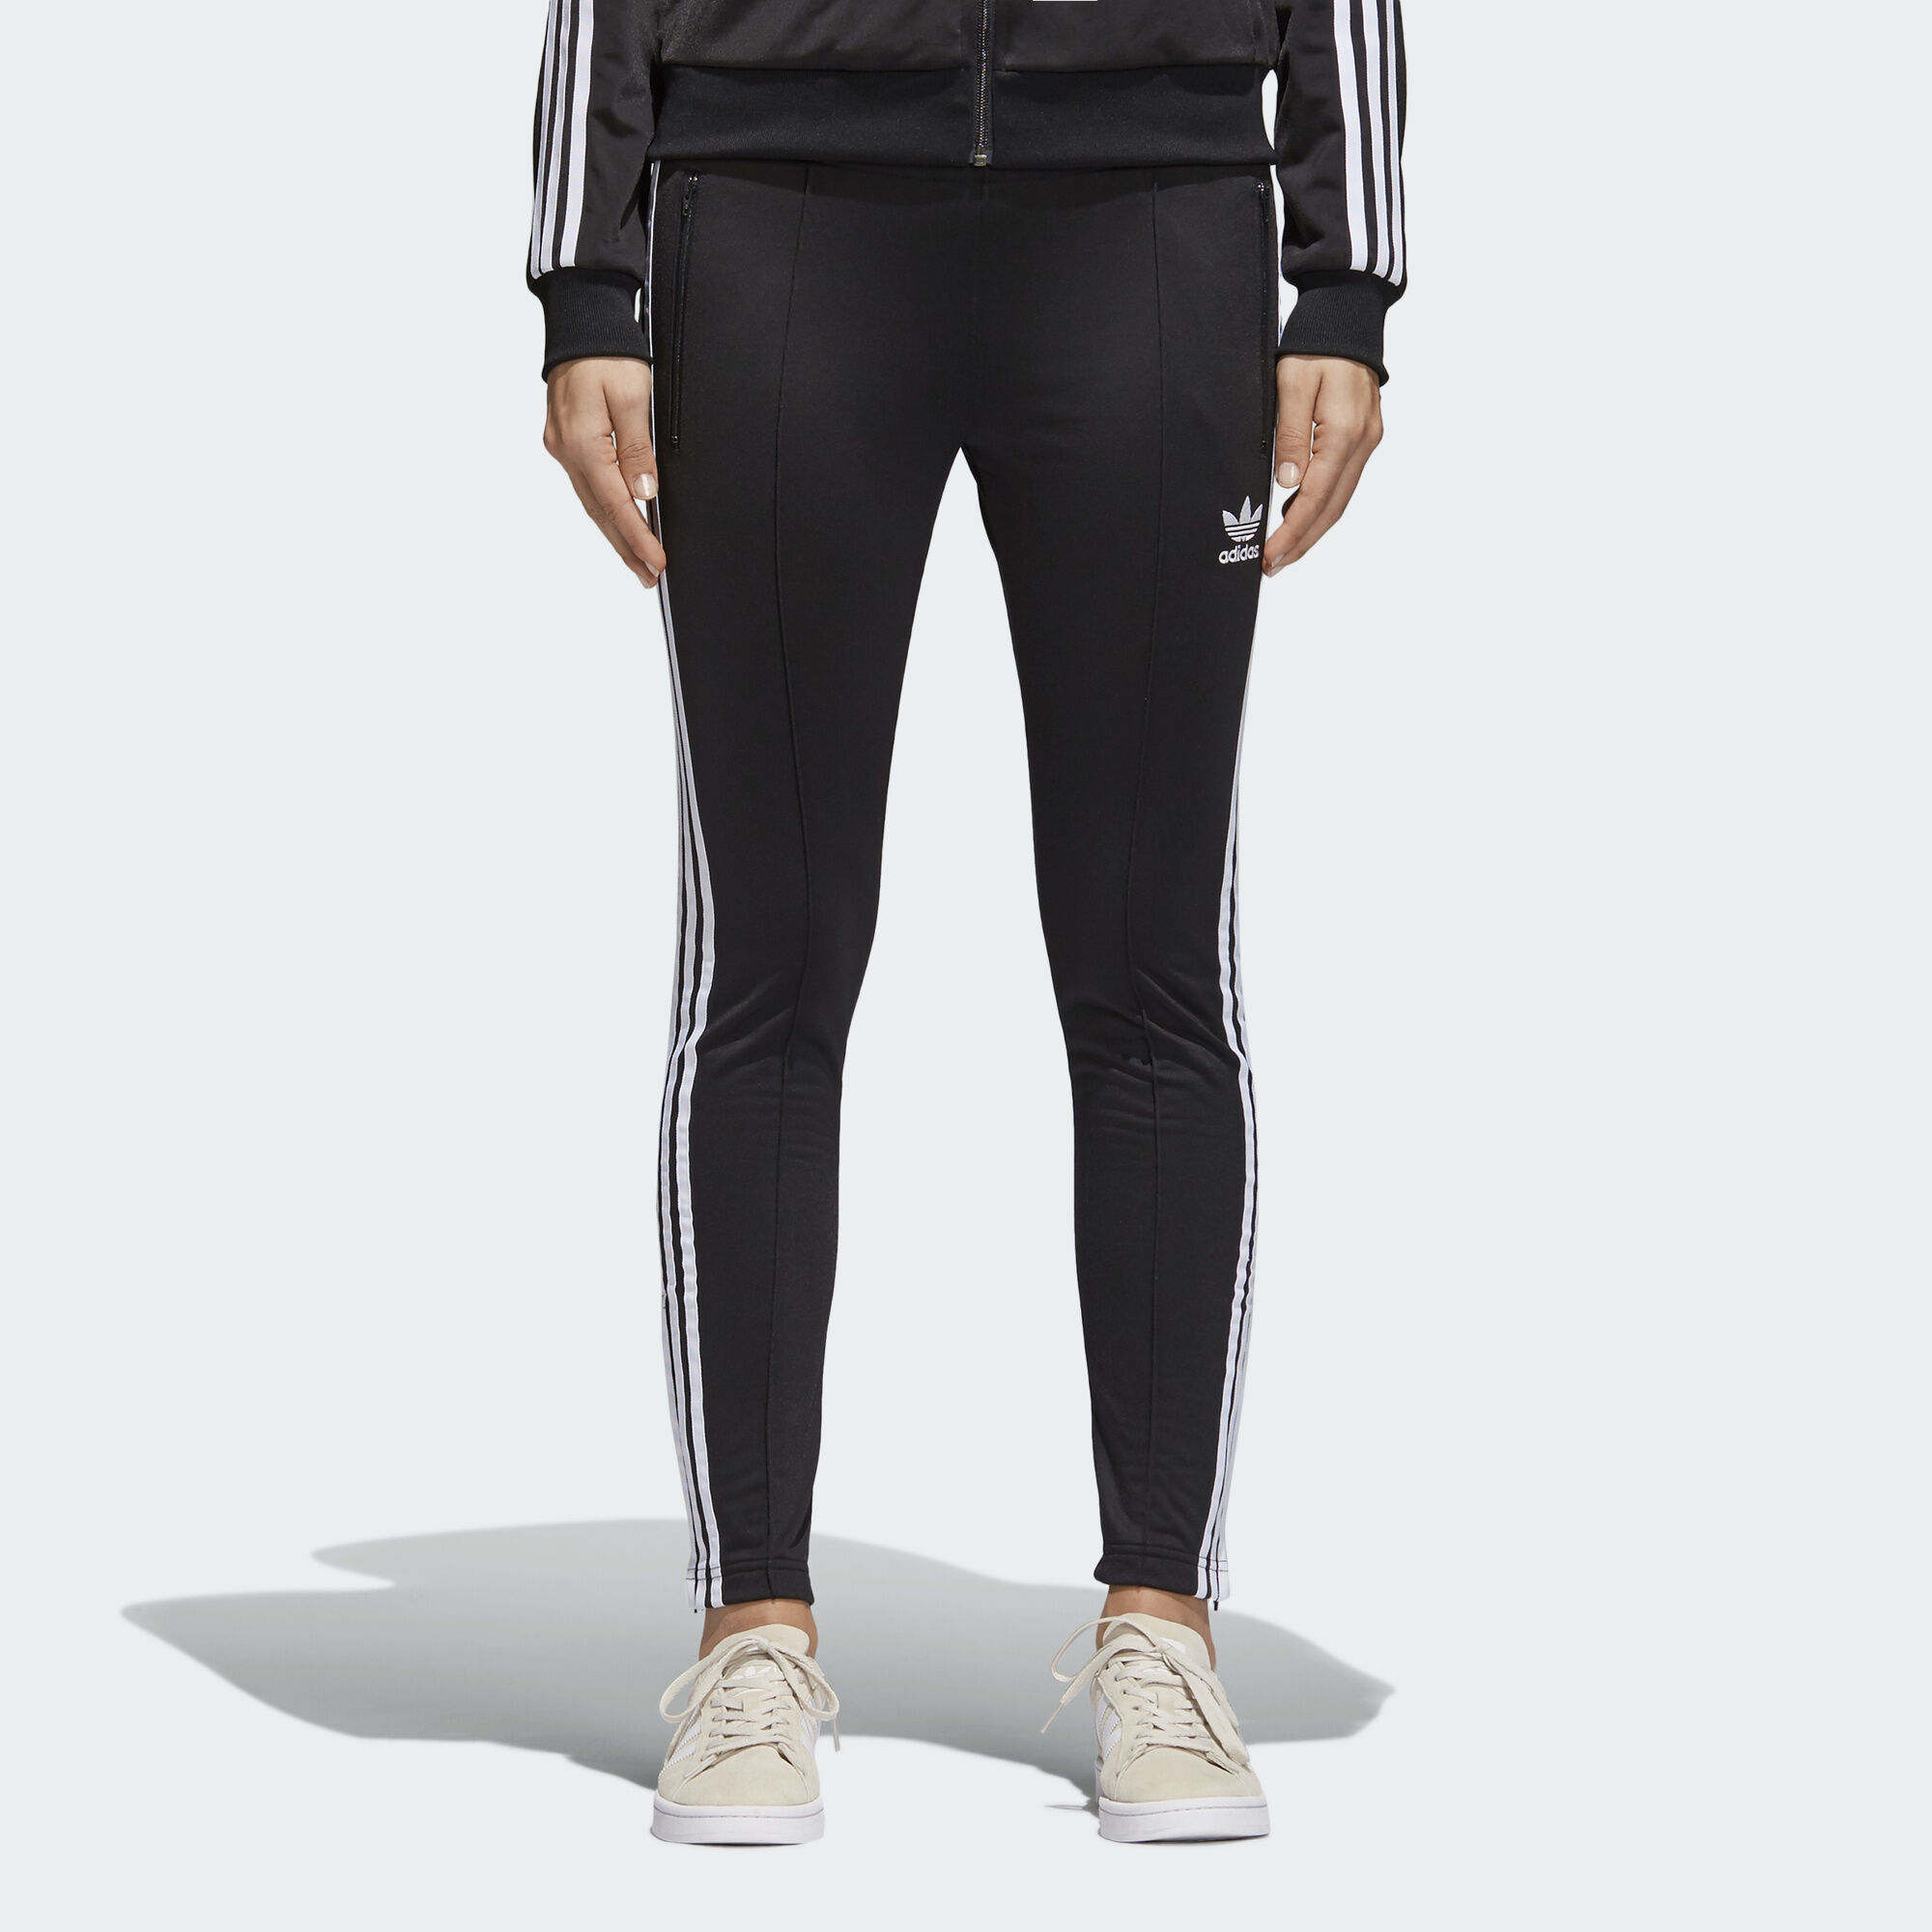 pantalon de survetement adidas